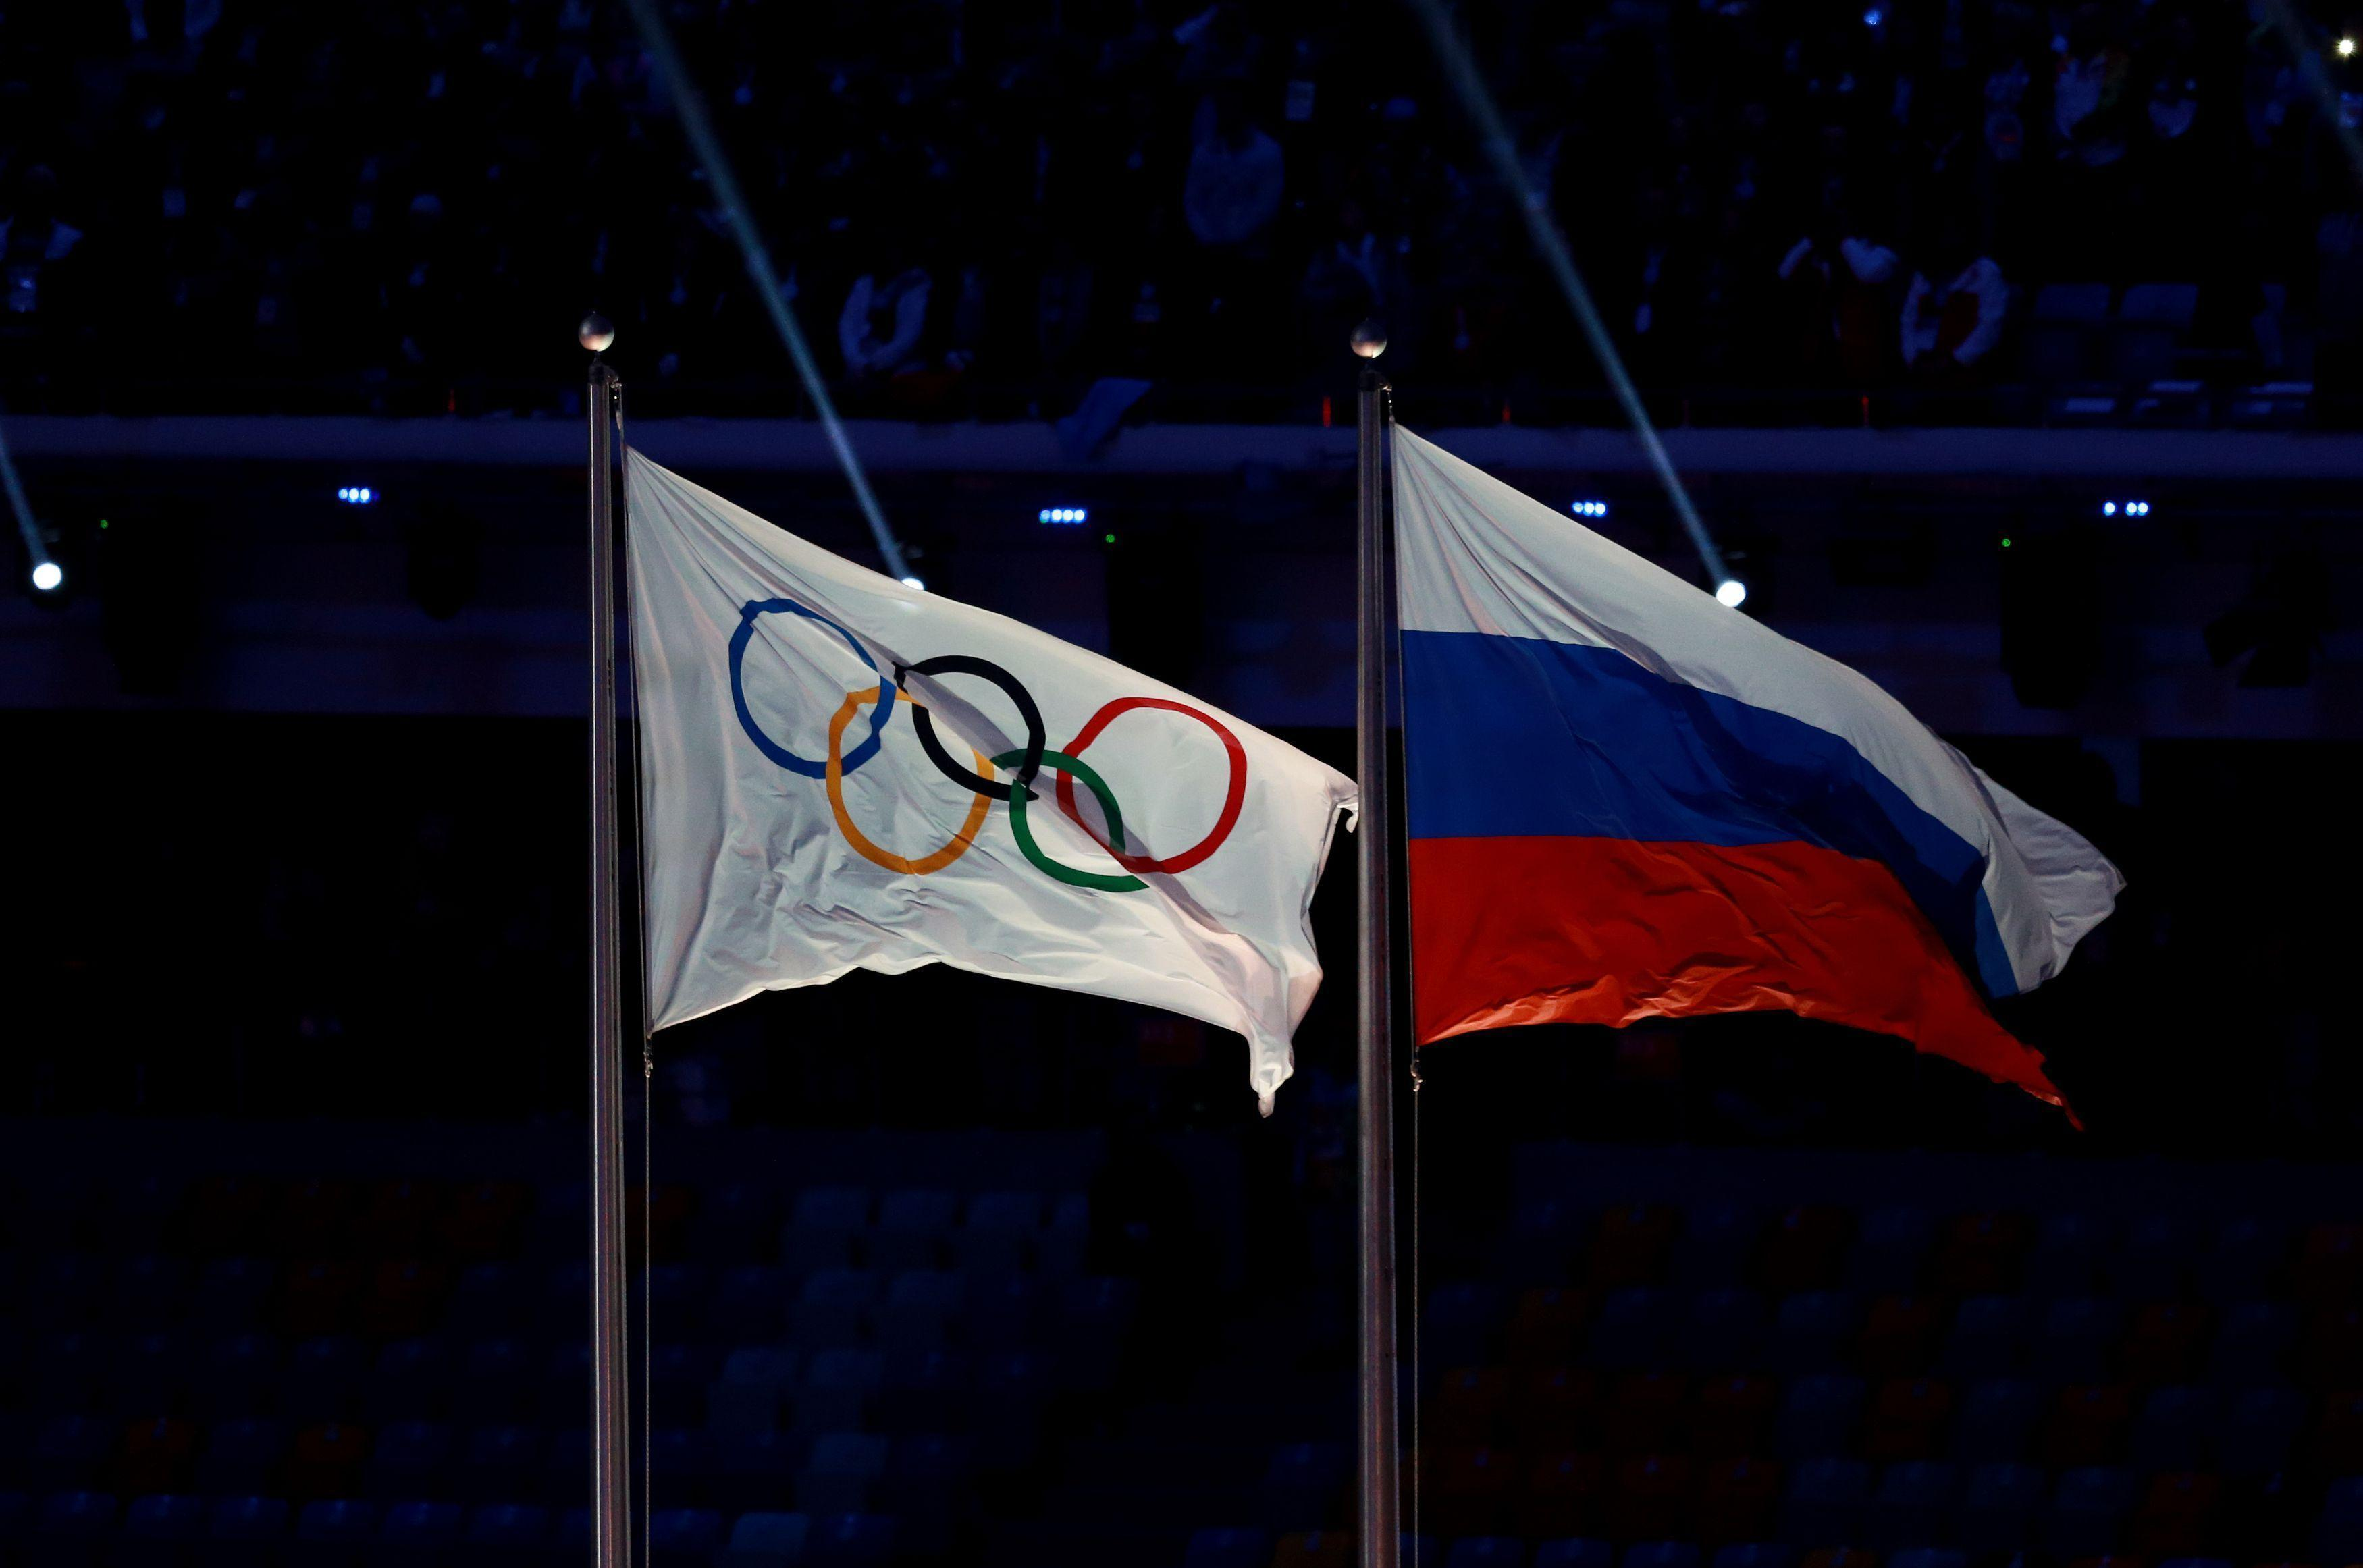 Russia competed in the Winter Olympics earlier this year, but can now compete fully at all events